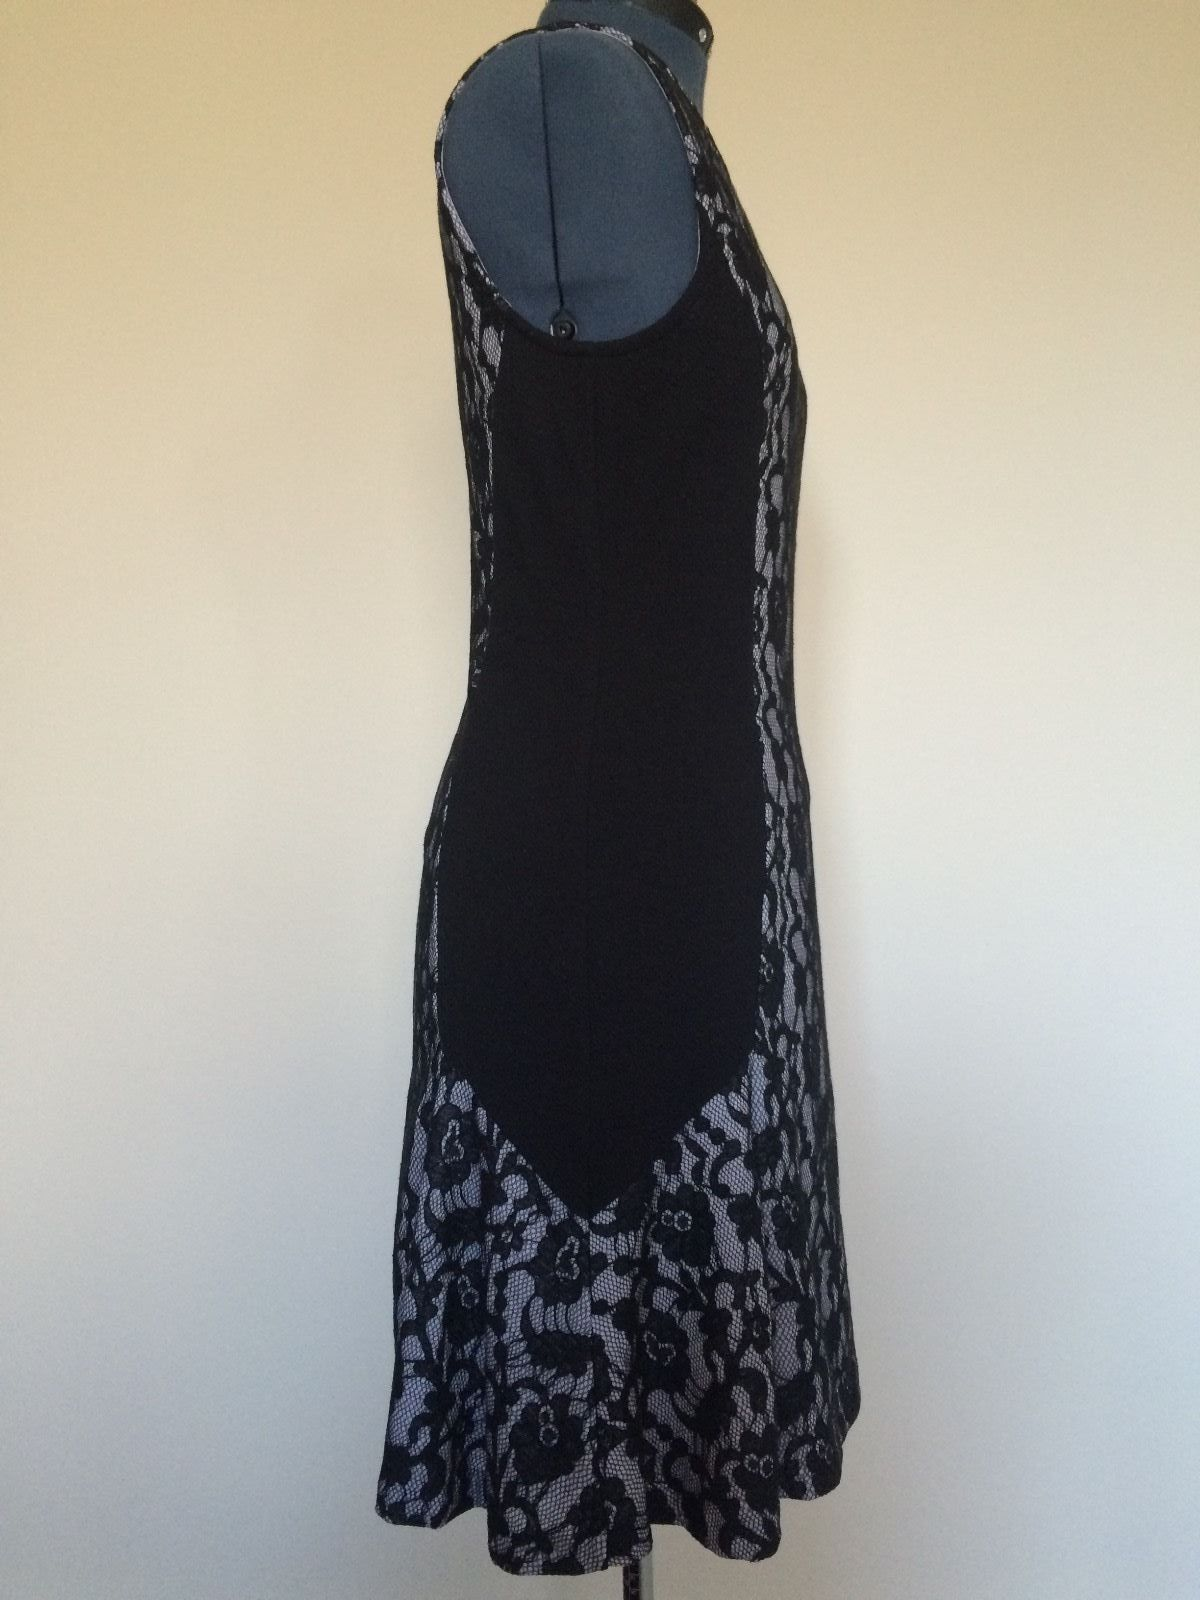 ANTHROPOLOGIE MAEVE Lace Dress Black & White Bodycon Sz.M